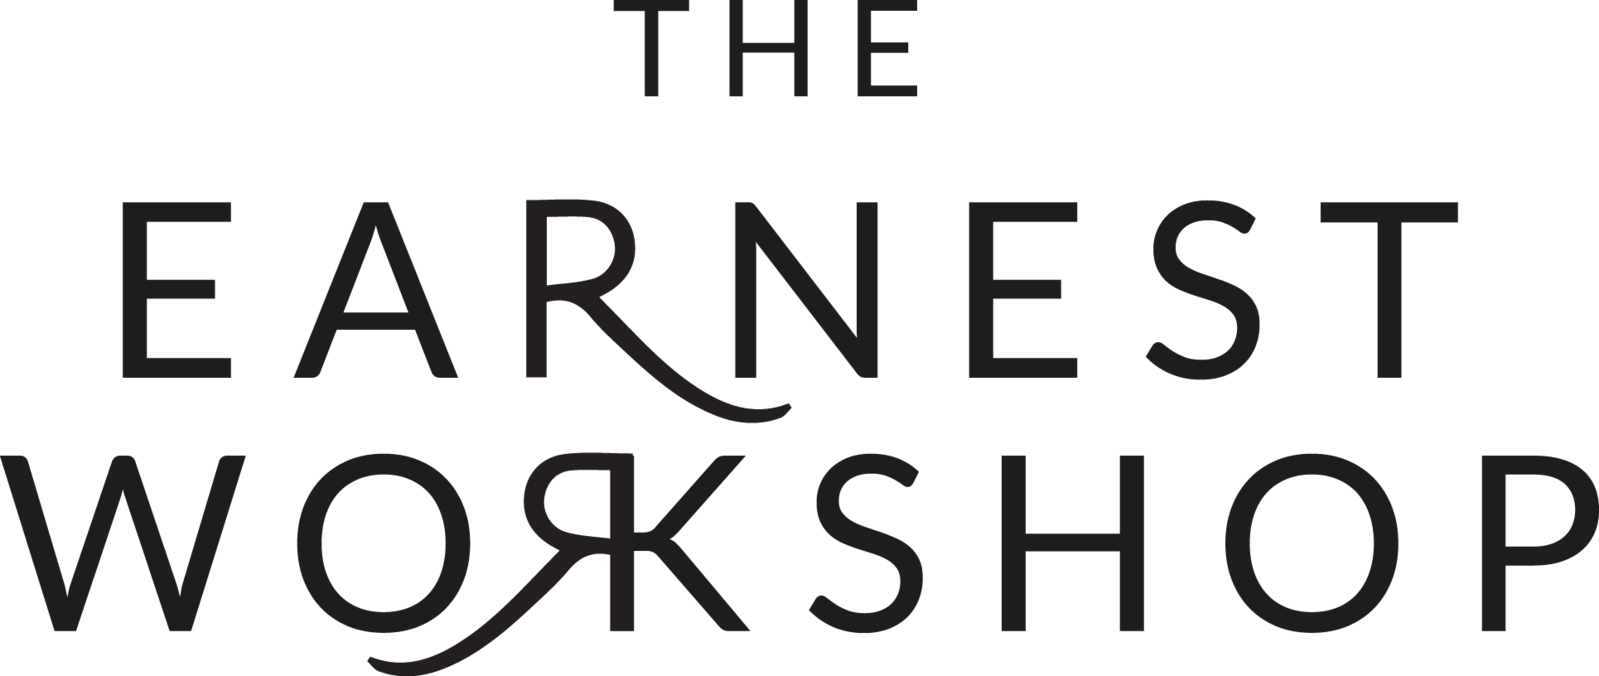 The Earnest Workshop